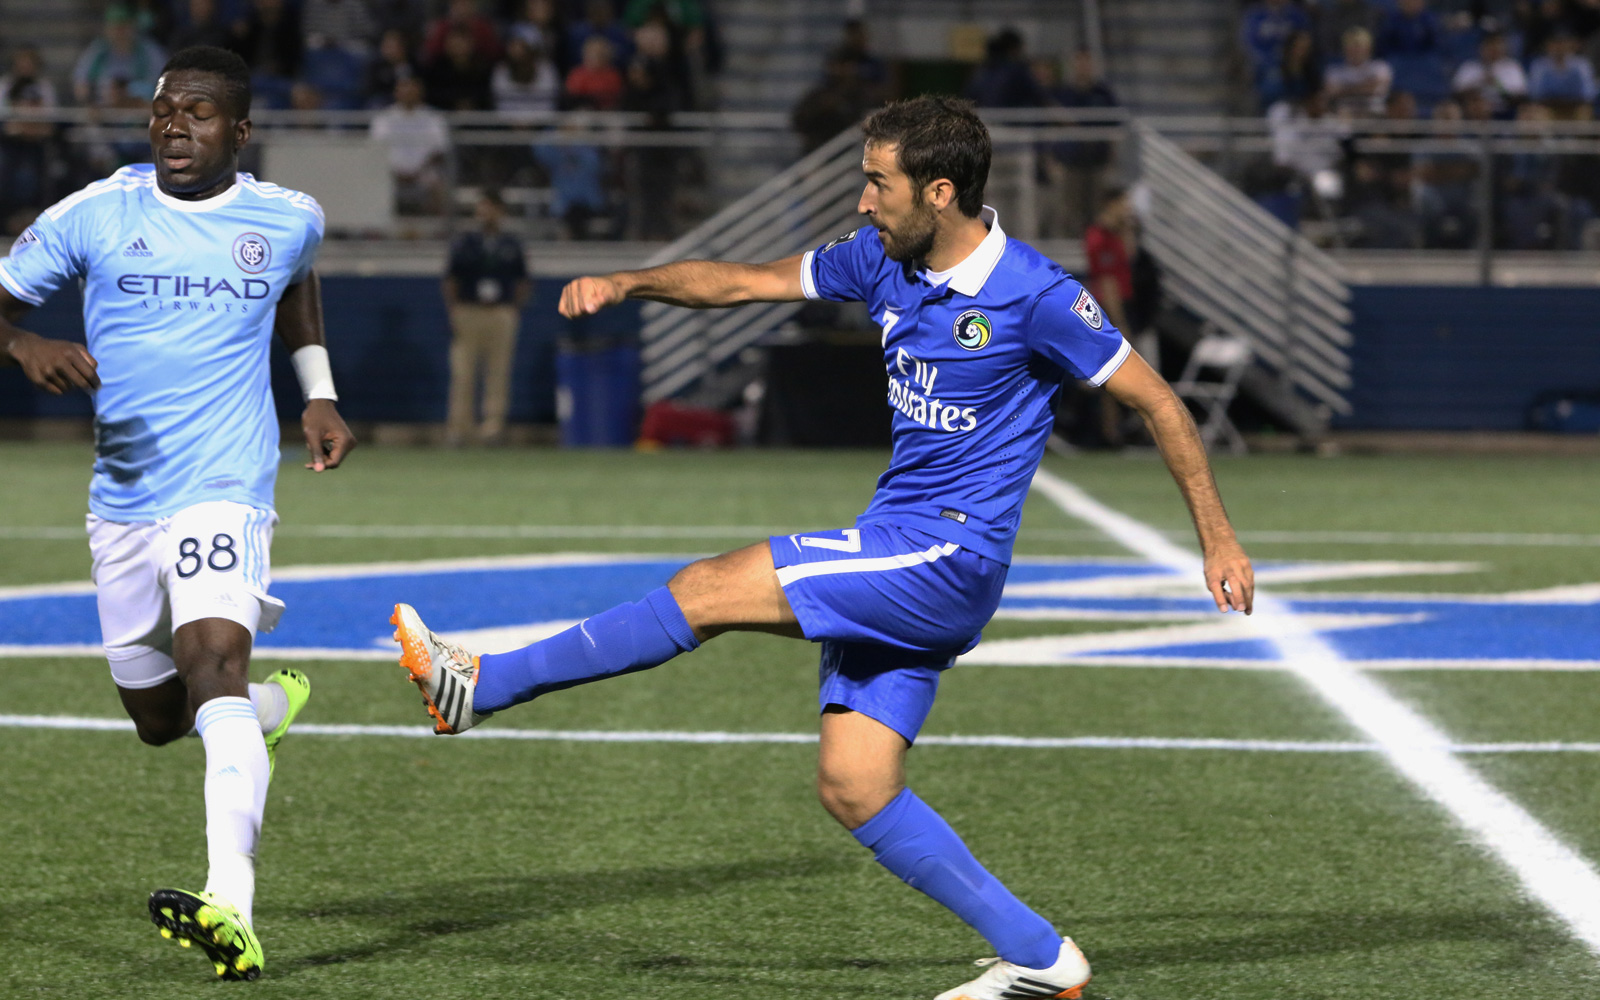 In the 57th minute of the U.S. Open Cup fourth round match, Cosmos star attacker Raul (7) moves the ball into the attacking third, slipping it past midfielder Kwadwo Poku (88), NYCFC's man of the match